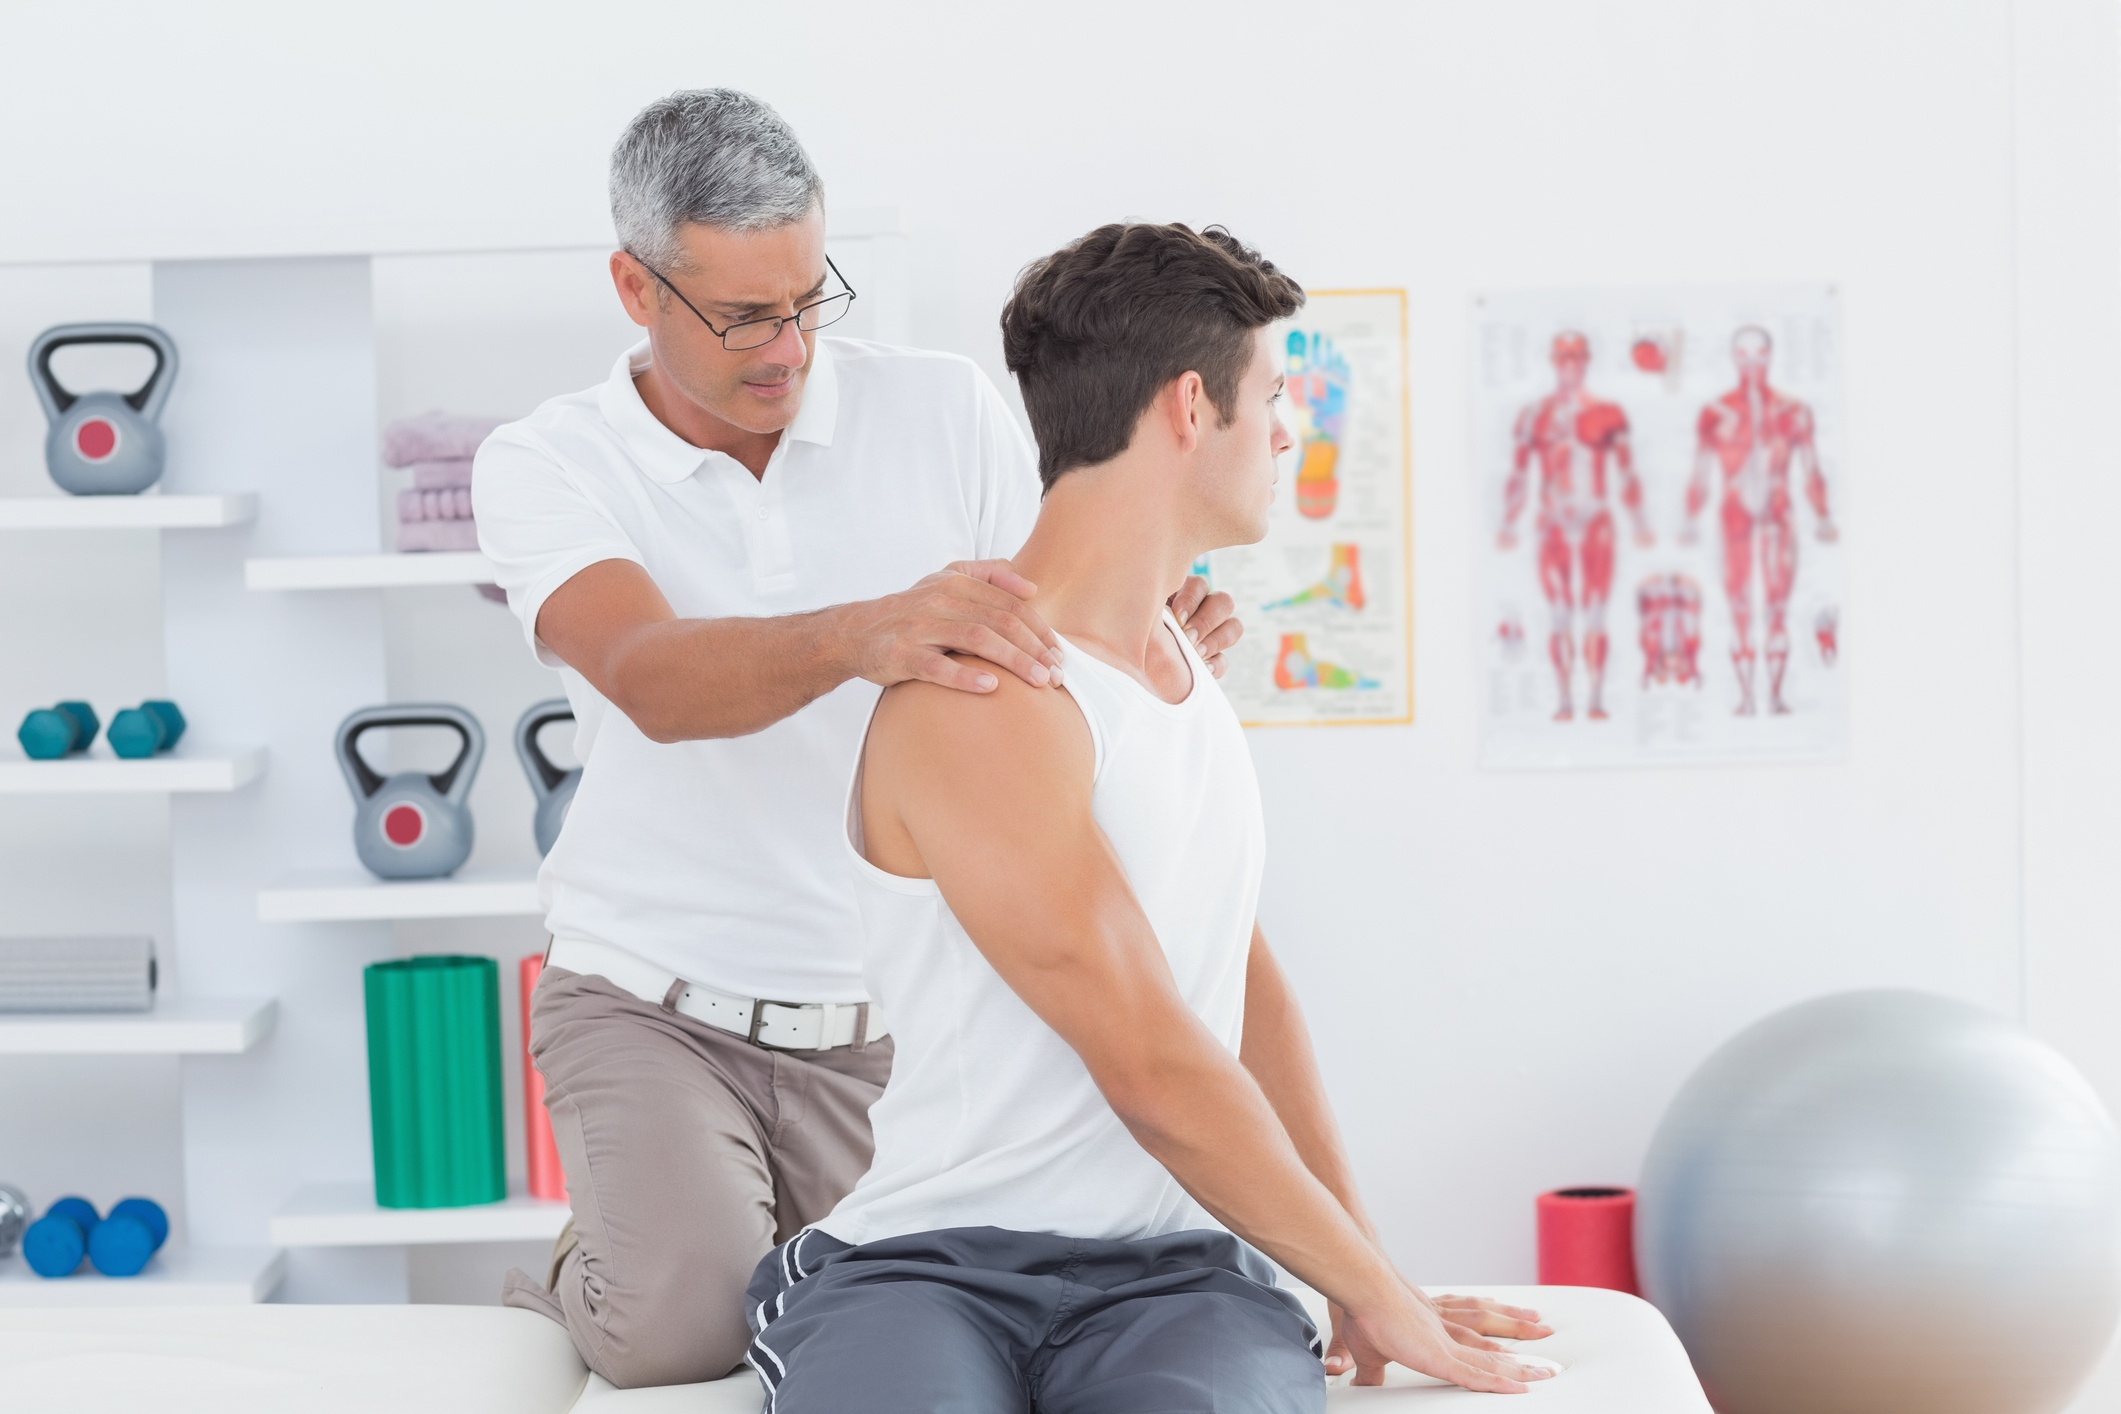 5 Reasons Why Chiropractic Treatments Are Important for Athletes